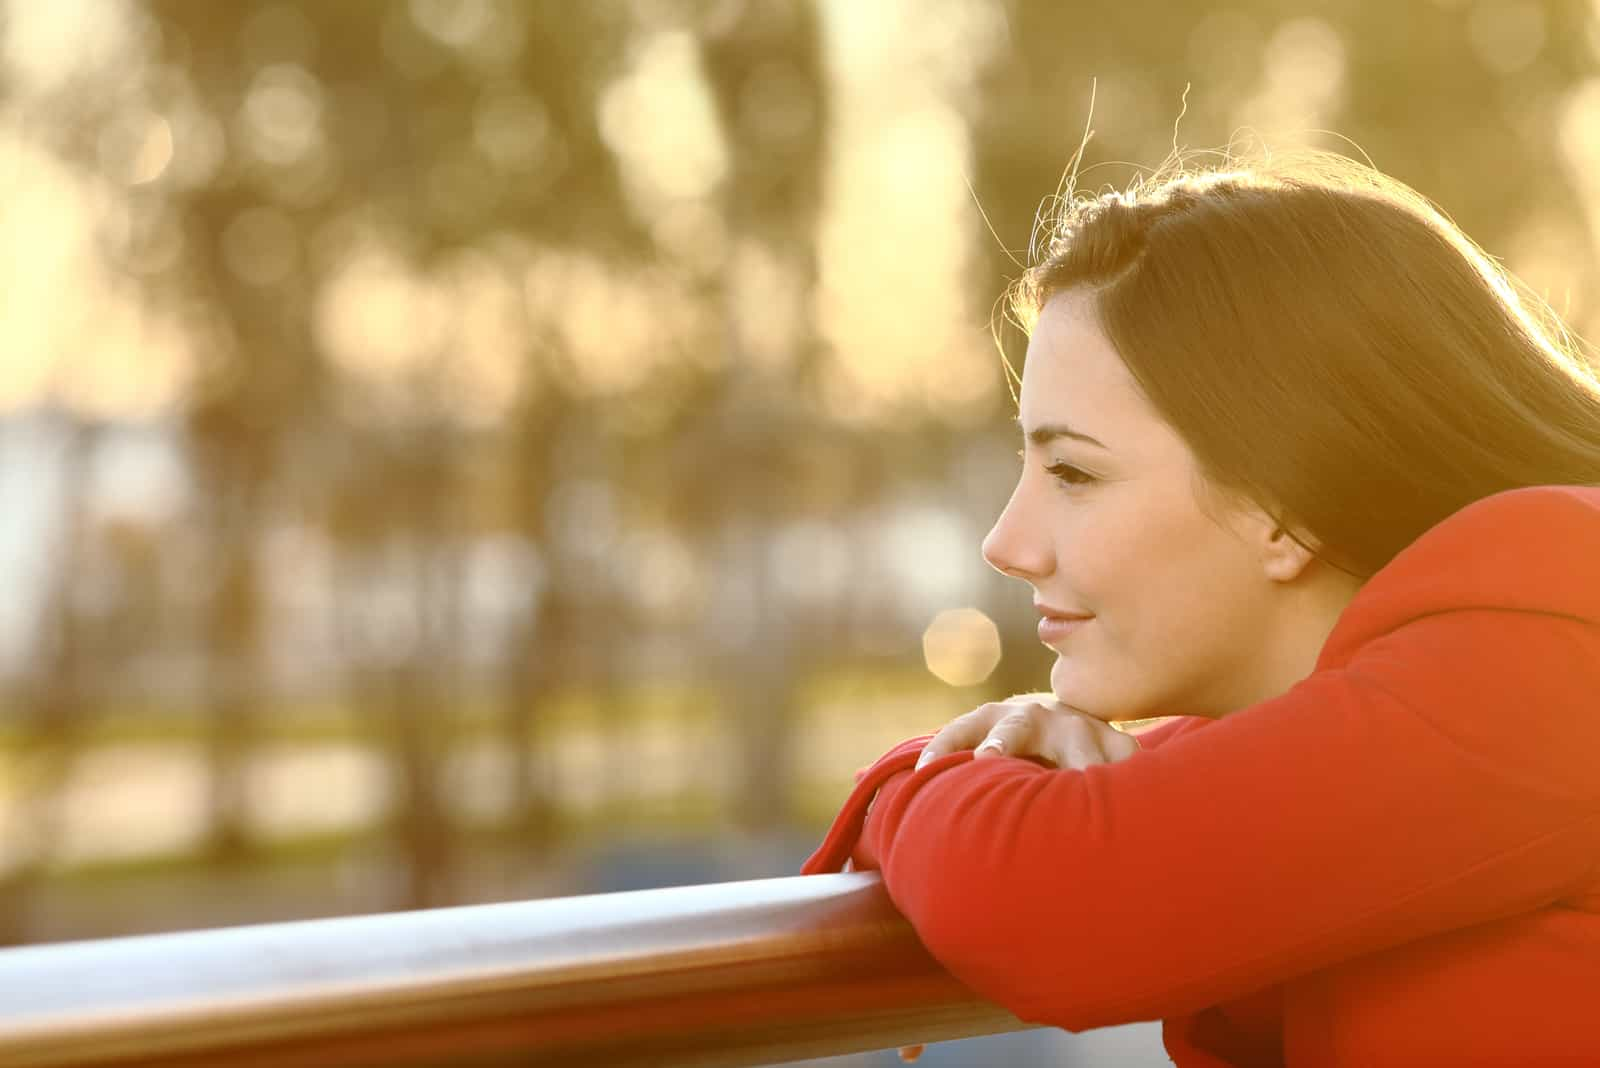 Pensive relaxed girl thinking